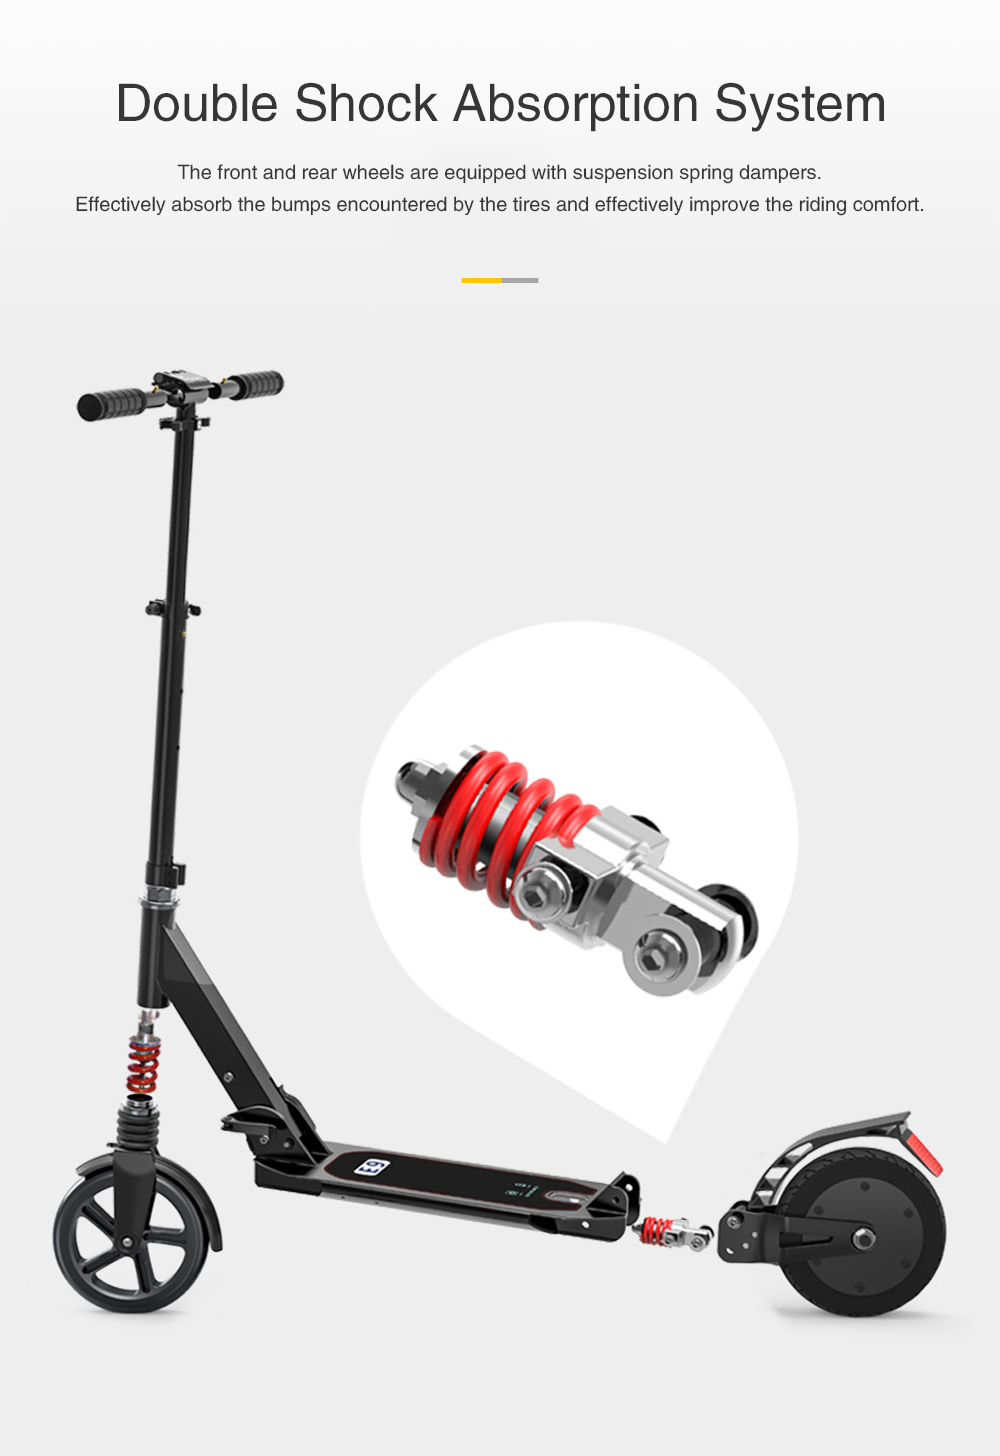 Icewheel E9S Dy rrota Shockproof Scooter Electric Scooter 2.6Ah Battery-Zi